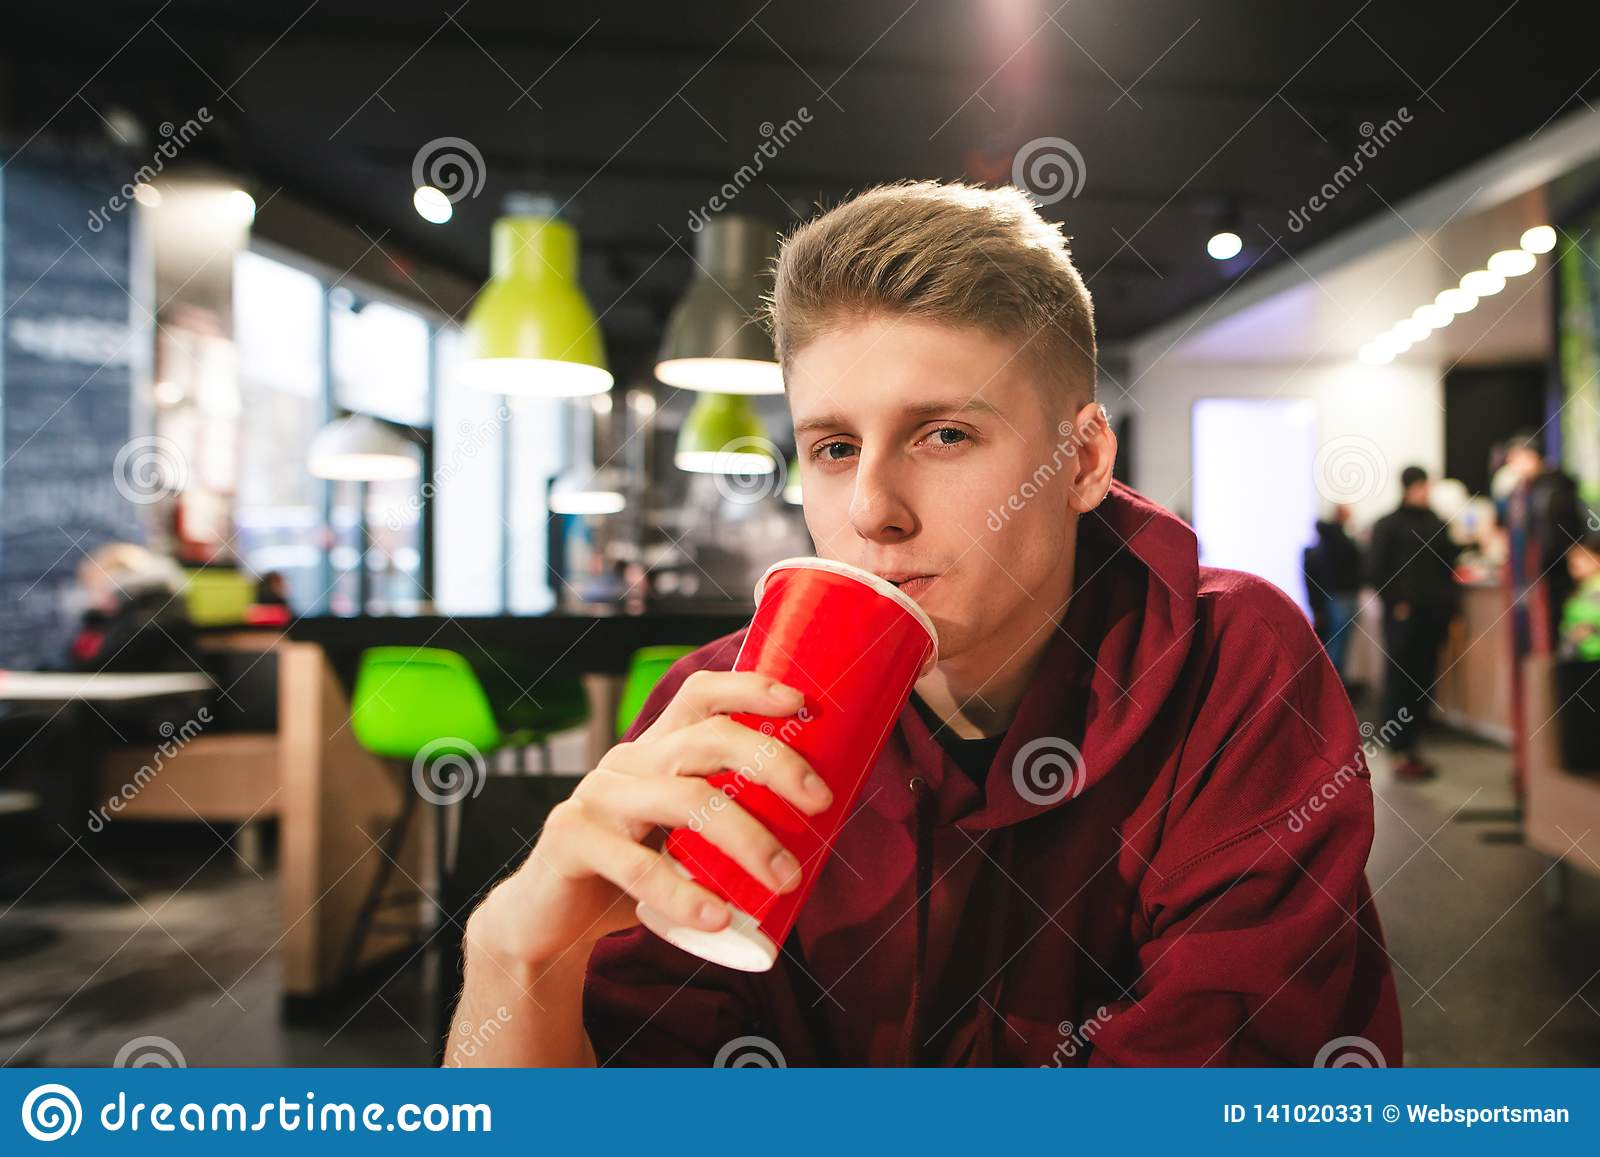 Portrait of attractive boy with a large red glass in his hand, drinking a stake and looking at the camera